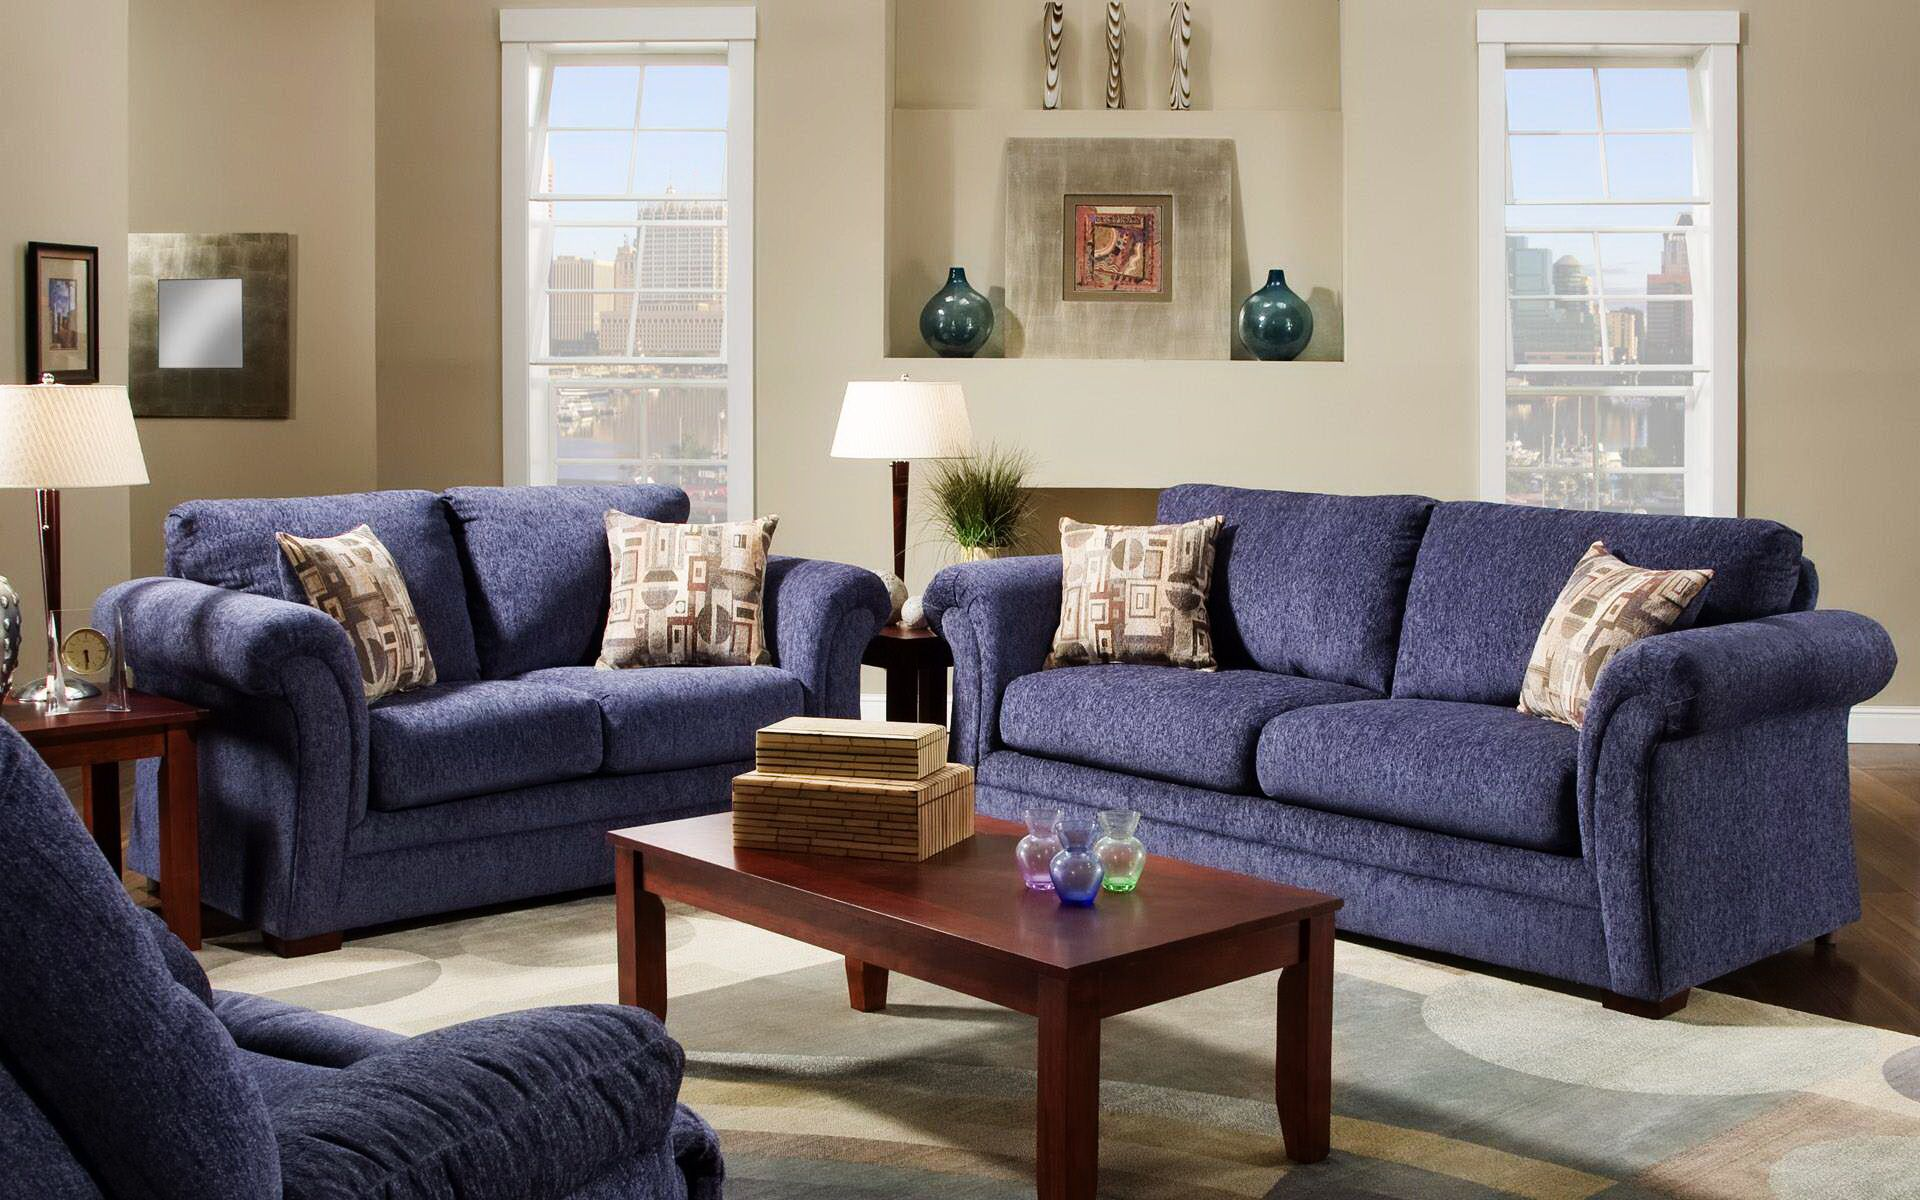 Dark Blue Couch Sofa In Cream Living Room Ideas   Dark Blue Couch Sofa In Cream  Living Room Ideas Part 26